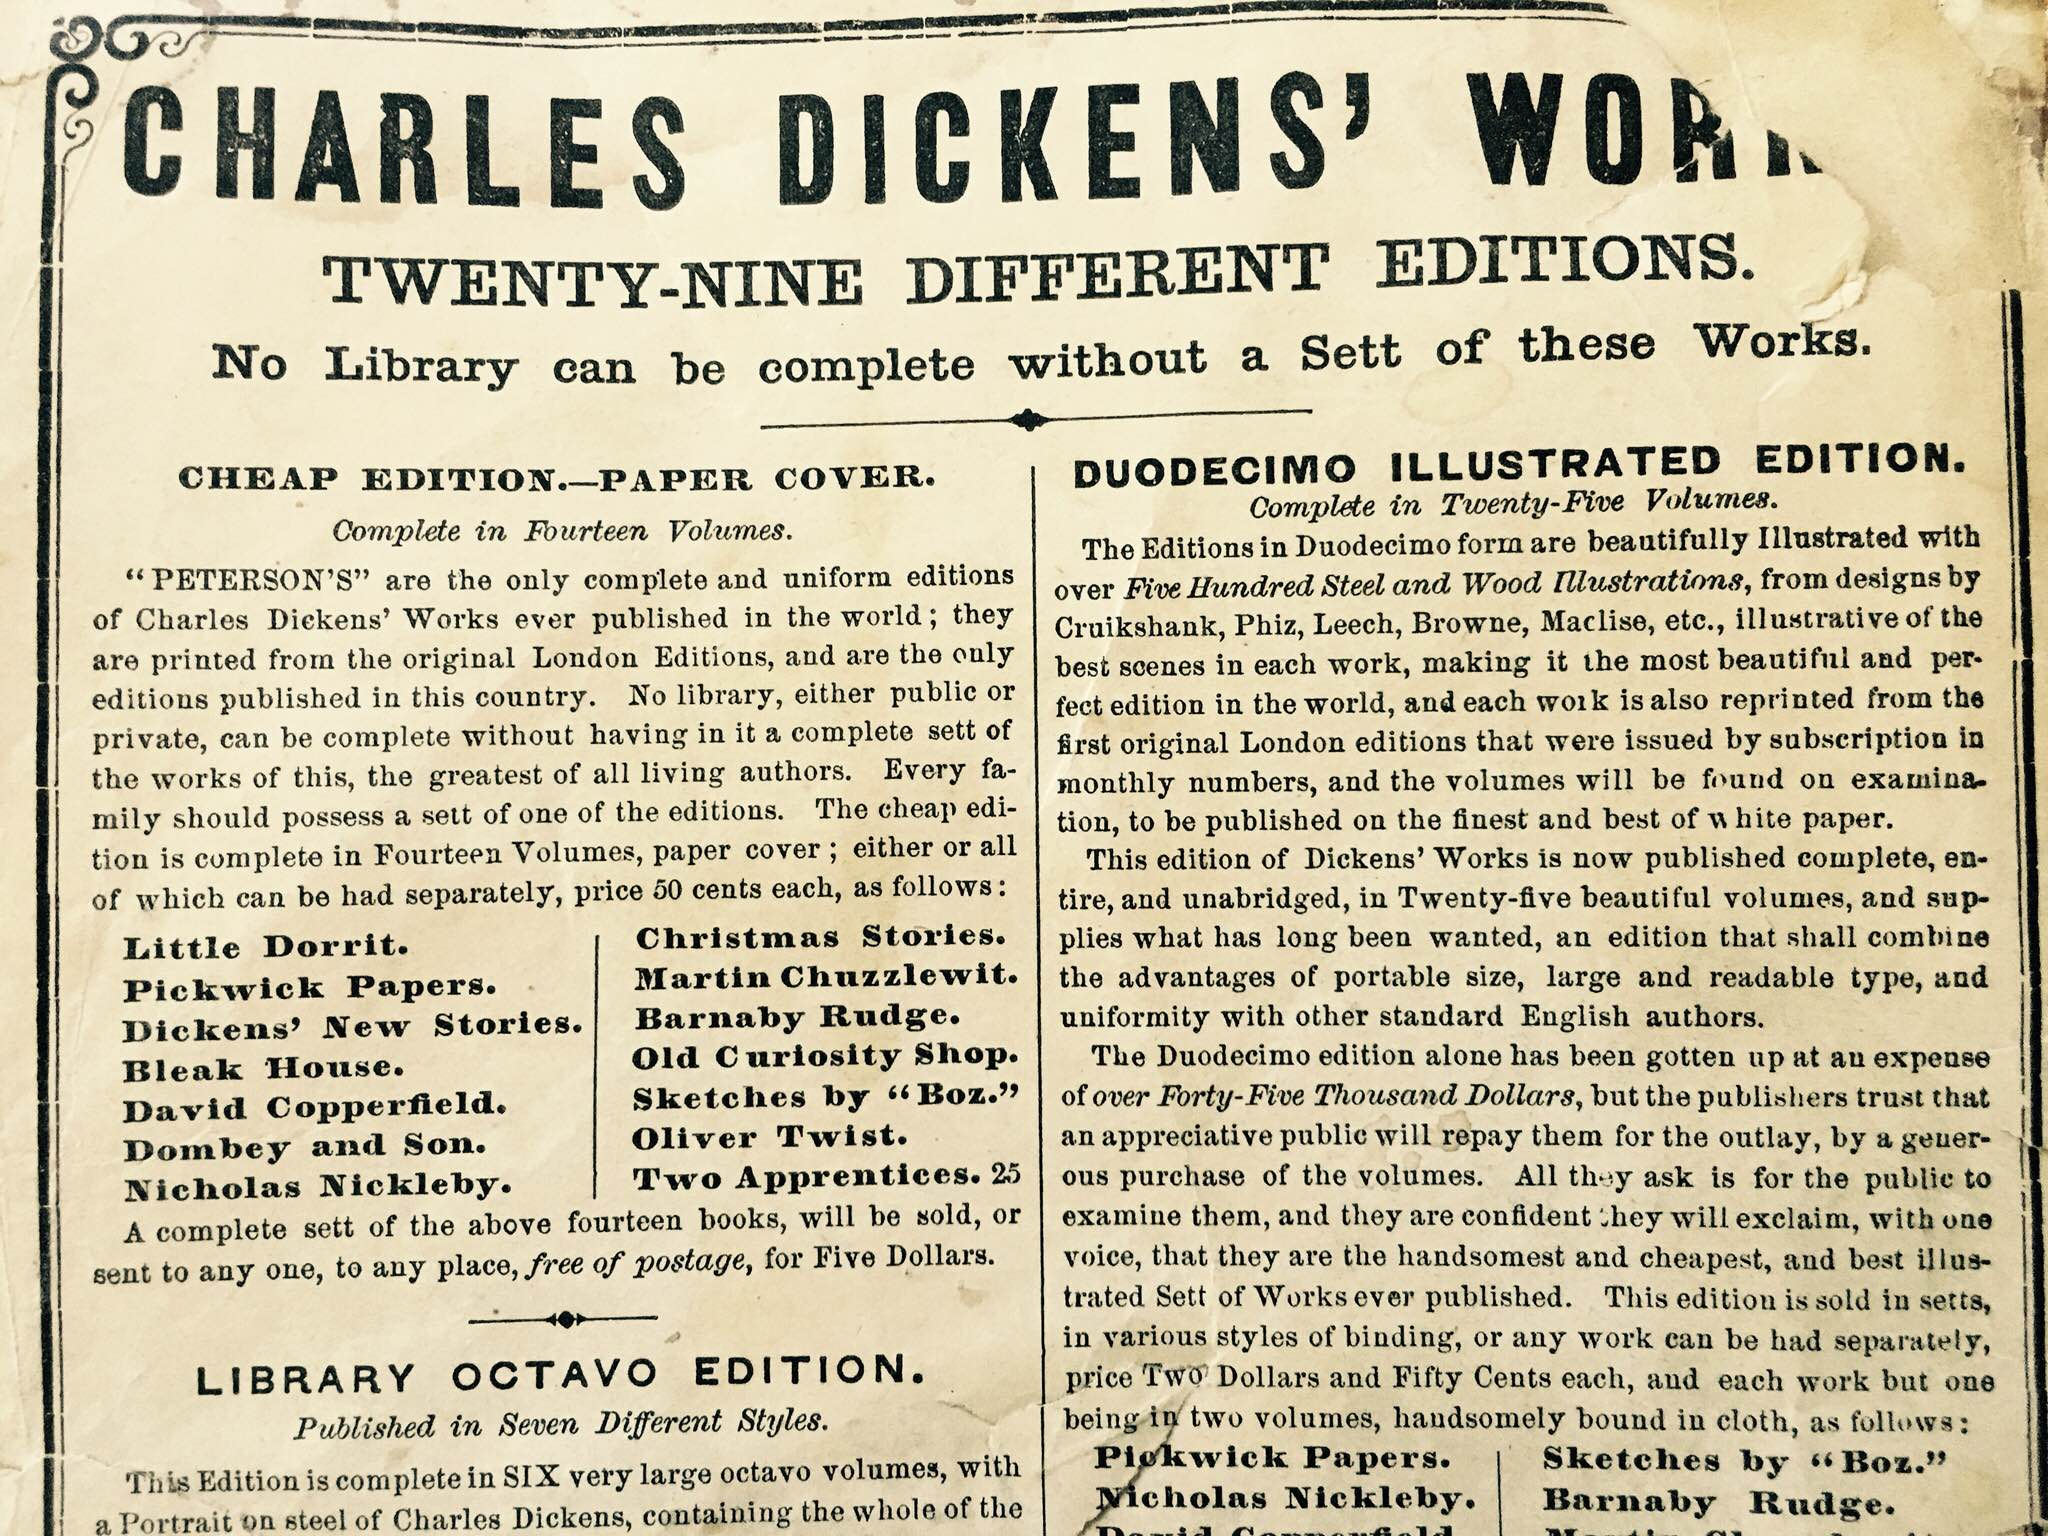 Part of a full page ad for books by Charles Dickens in various editions.